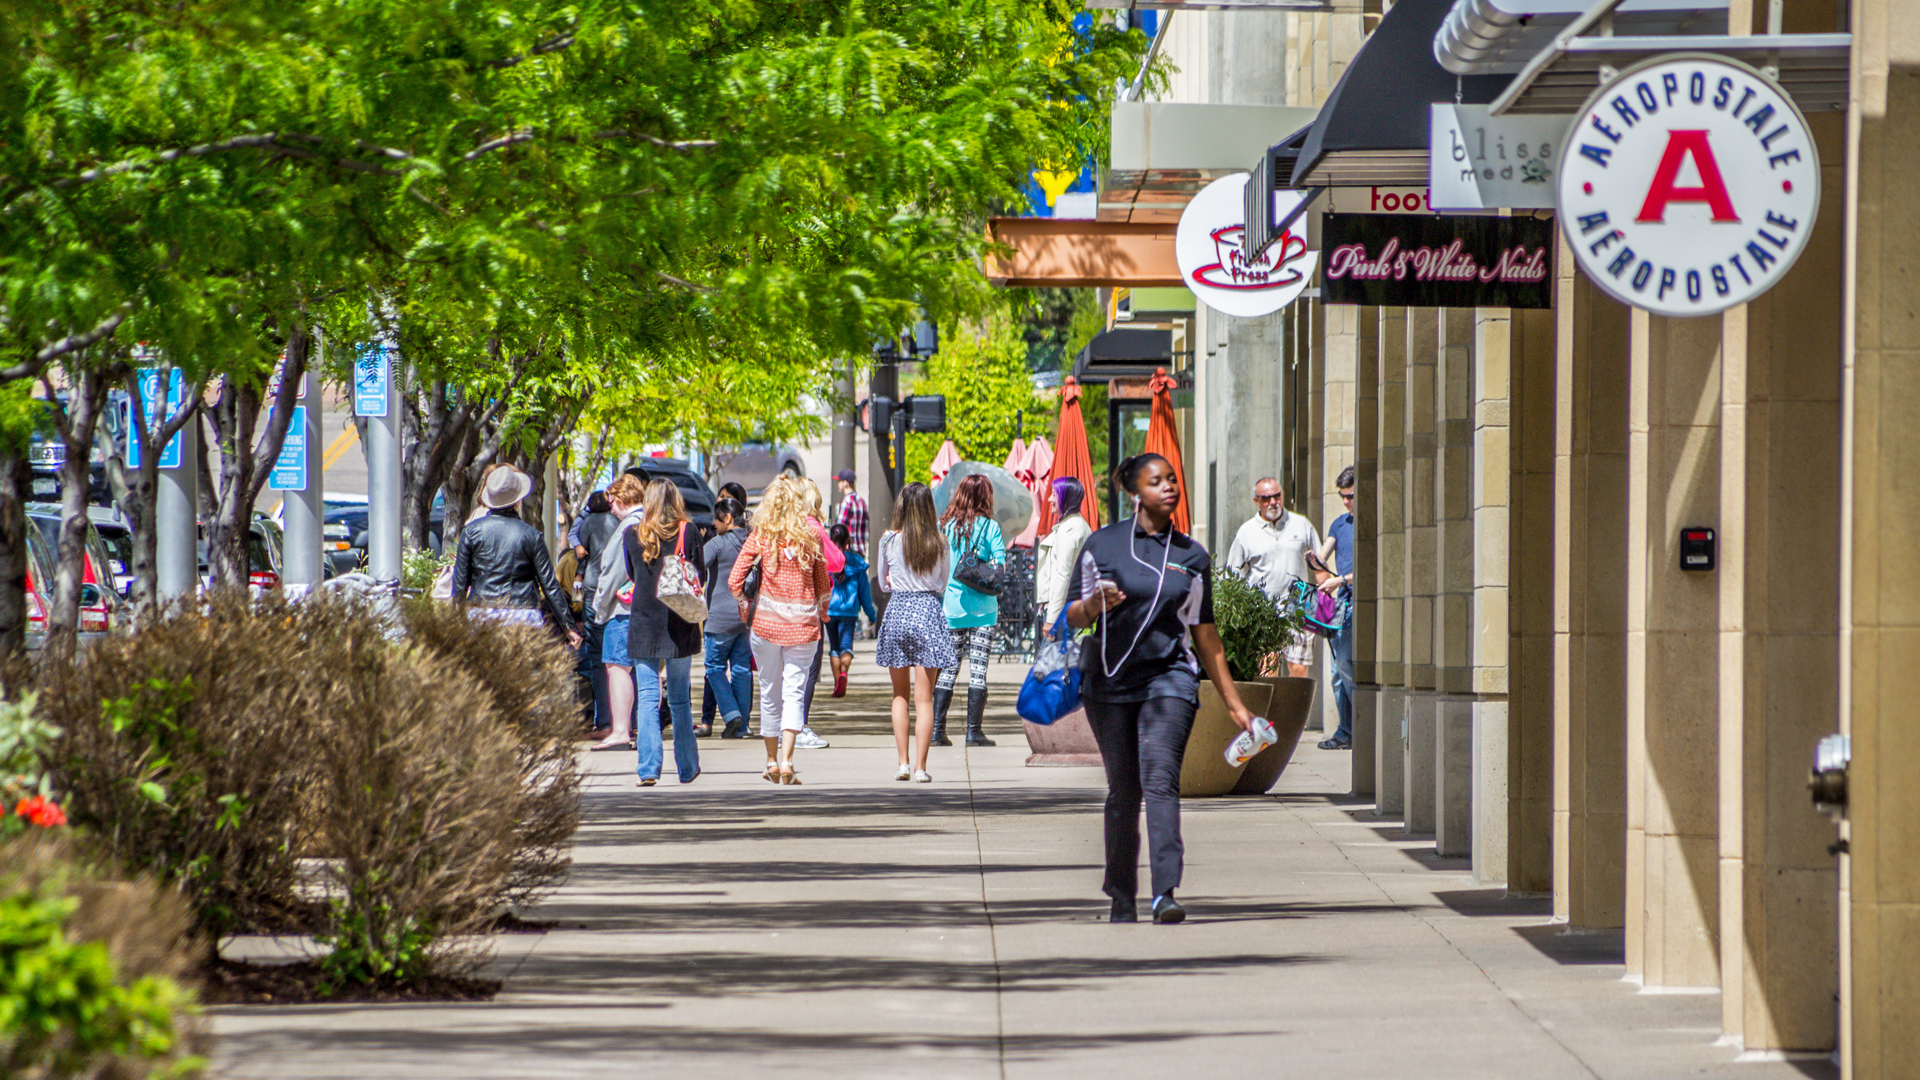 <p>Belmar features 726,000 square feet of top-tier retail centered on national favorites like Nordstrom Rack, Target, Whole Foods, Sur La Table, DSW and Victoria's Secret.</p>